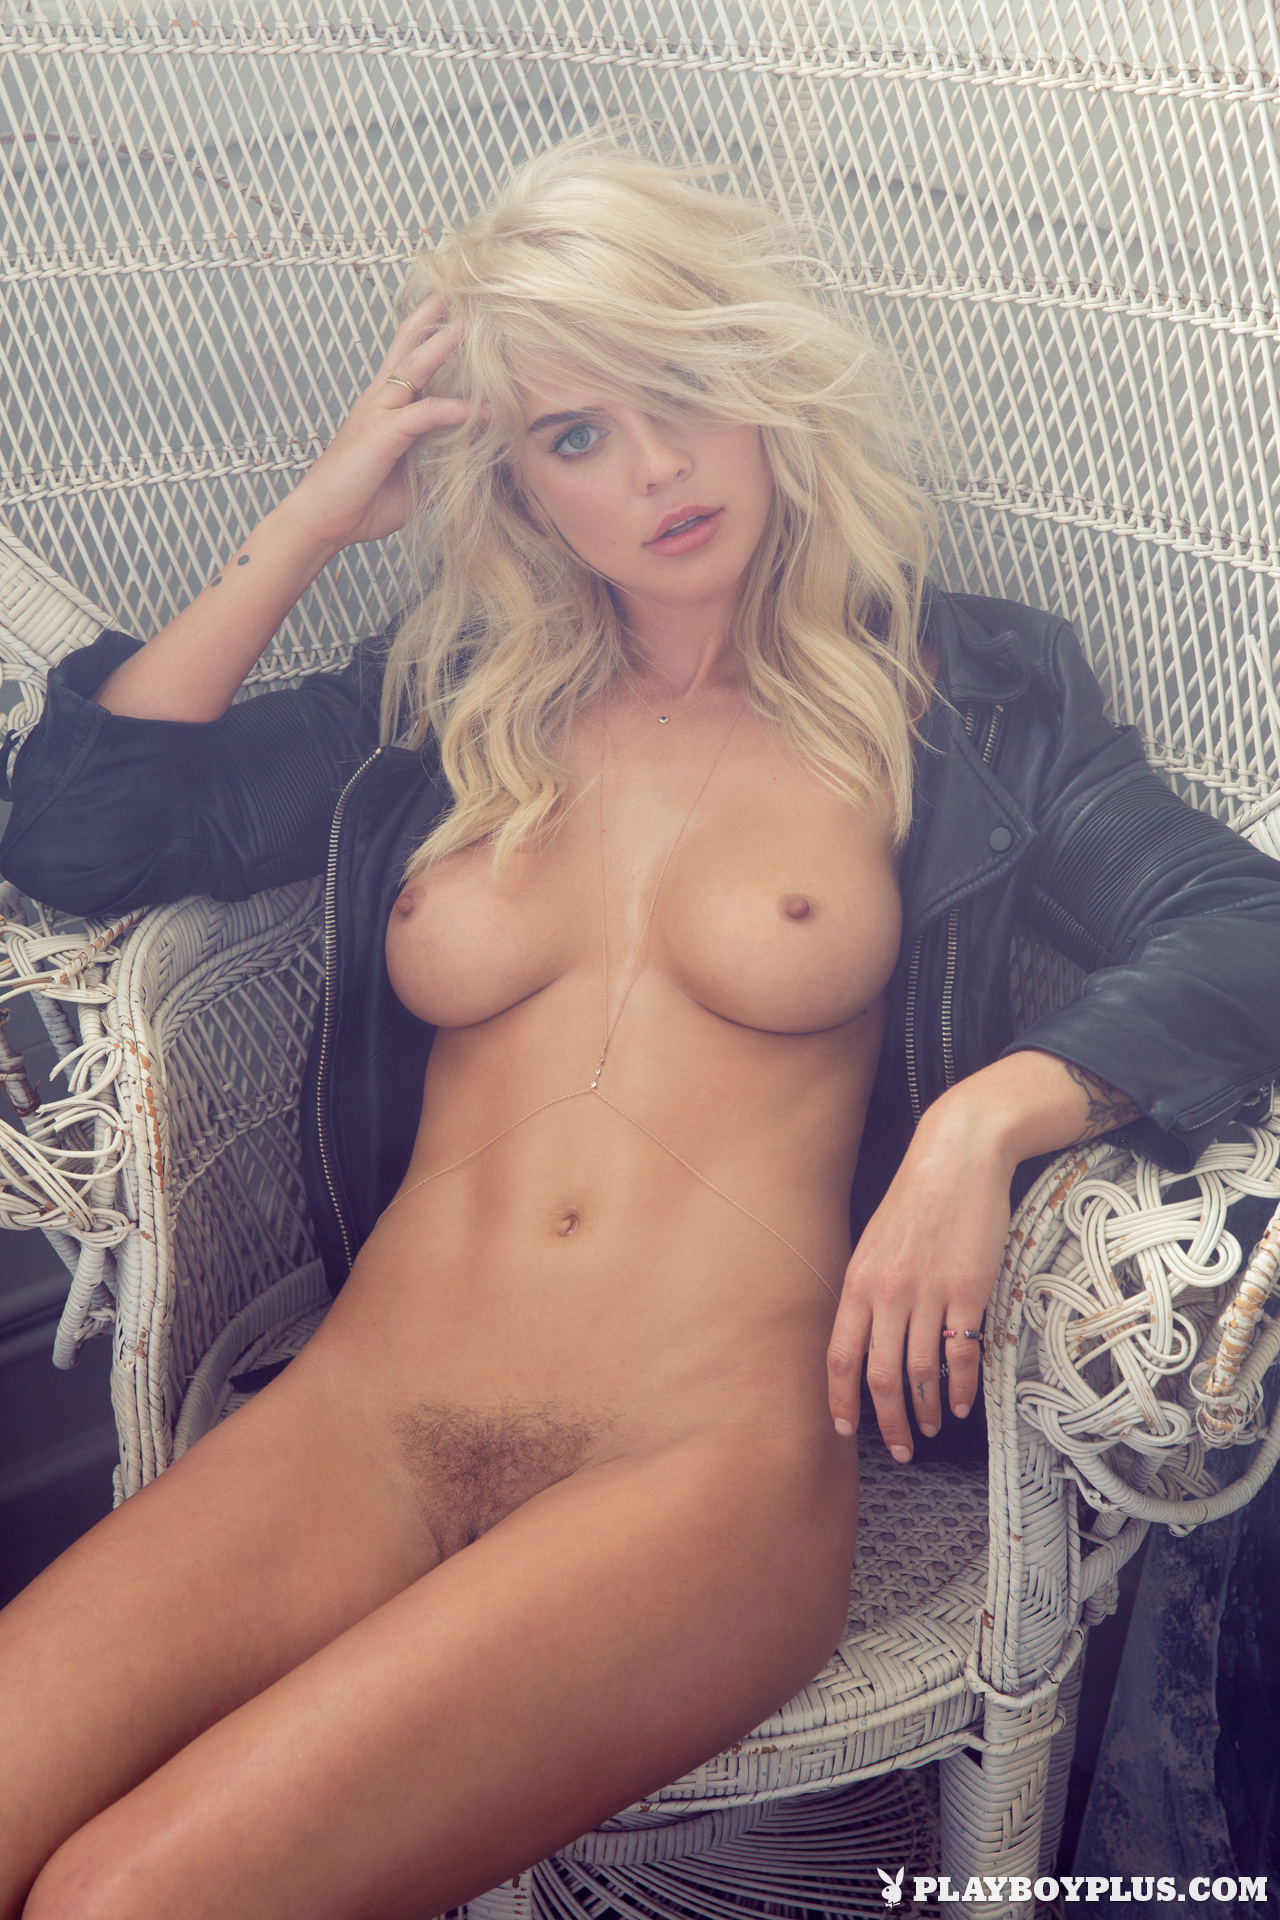 Amazing blonde play mate nudes